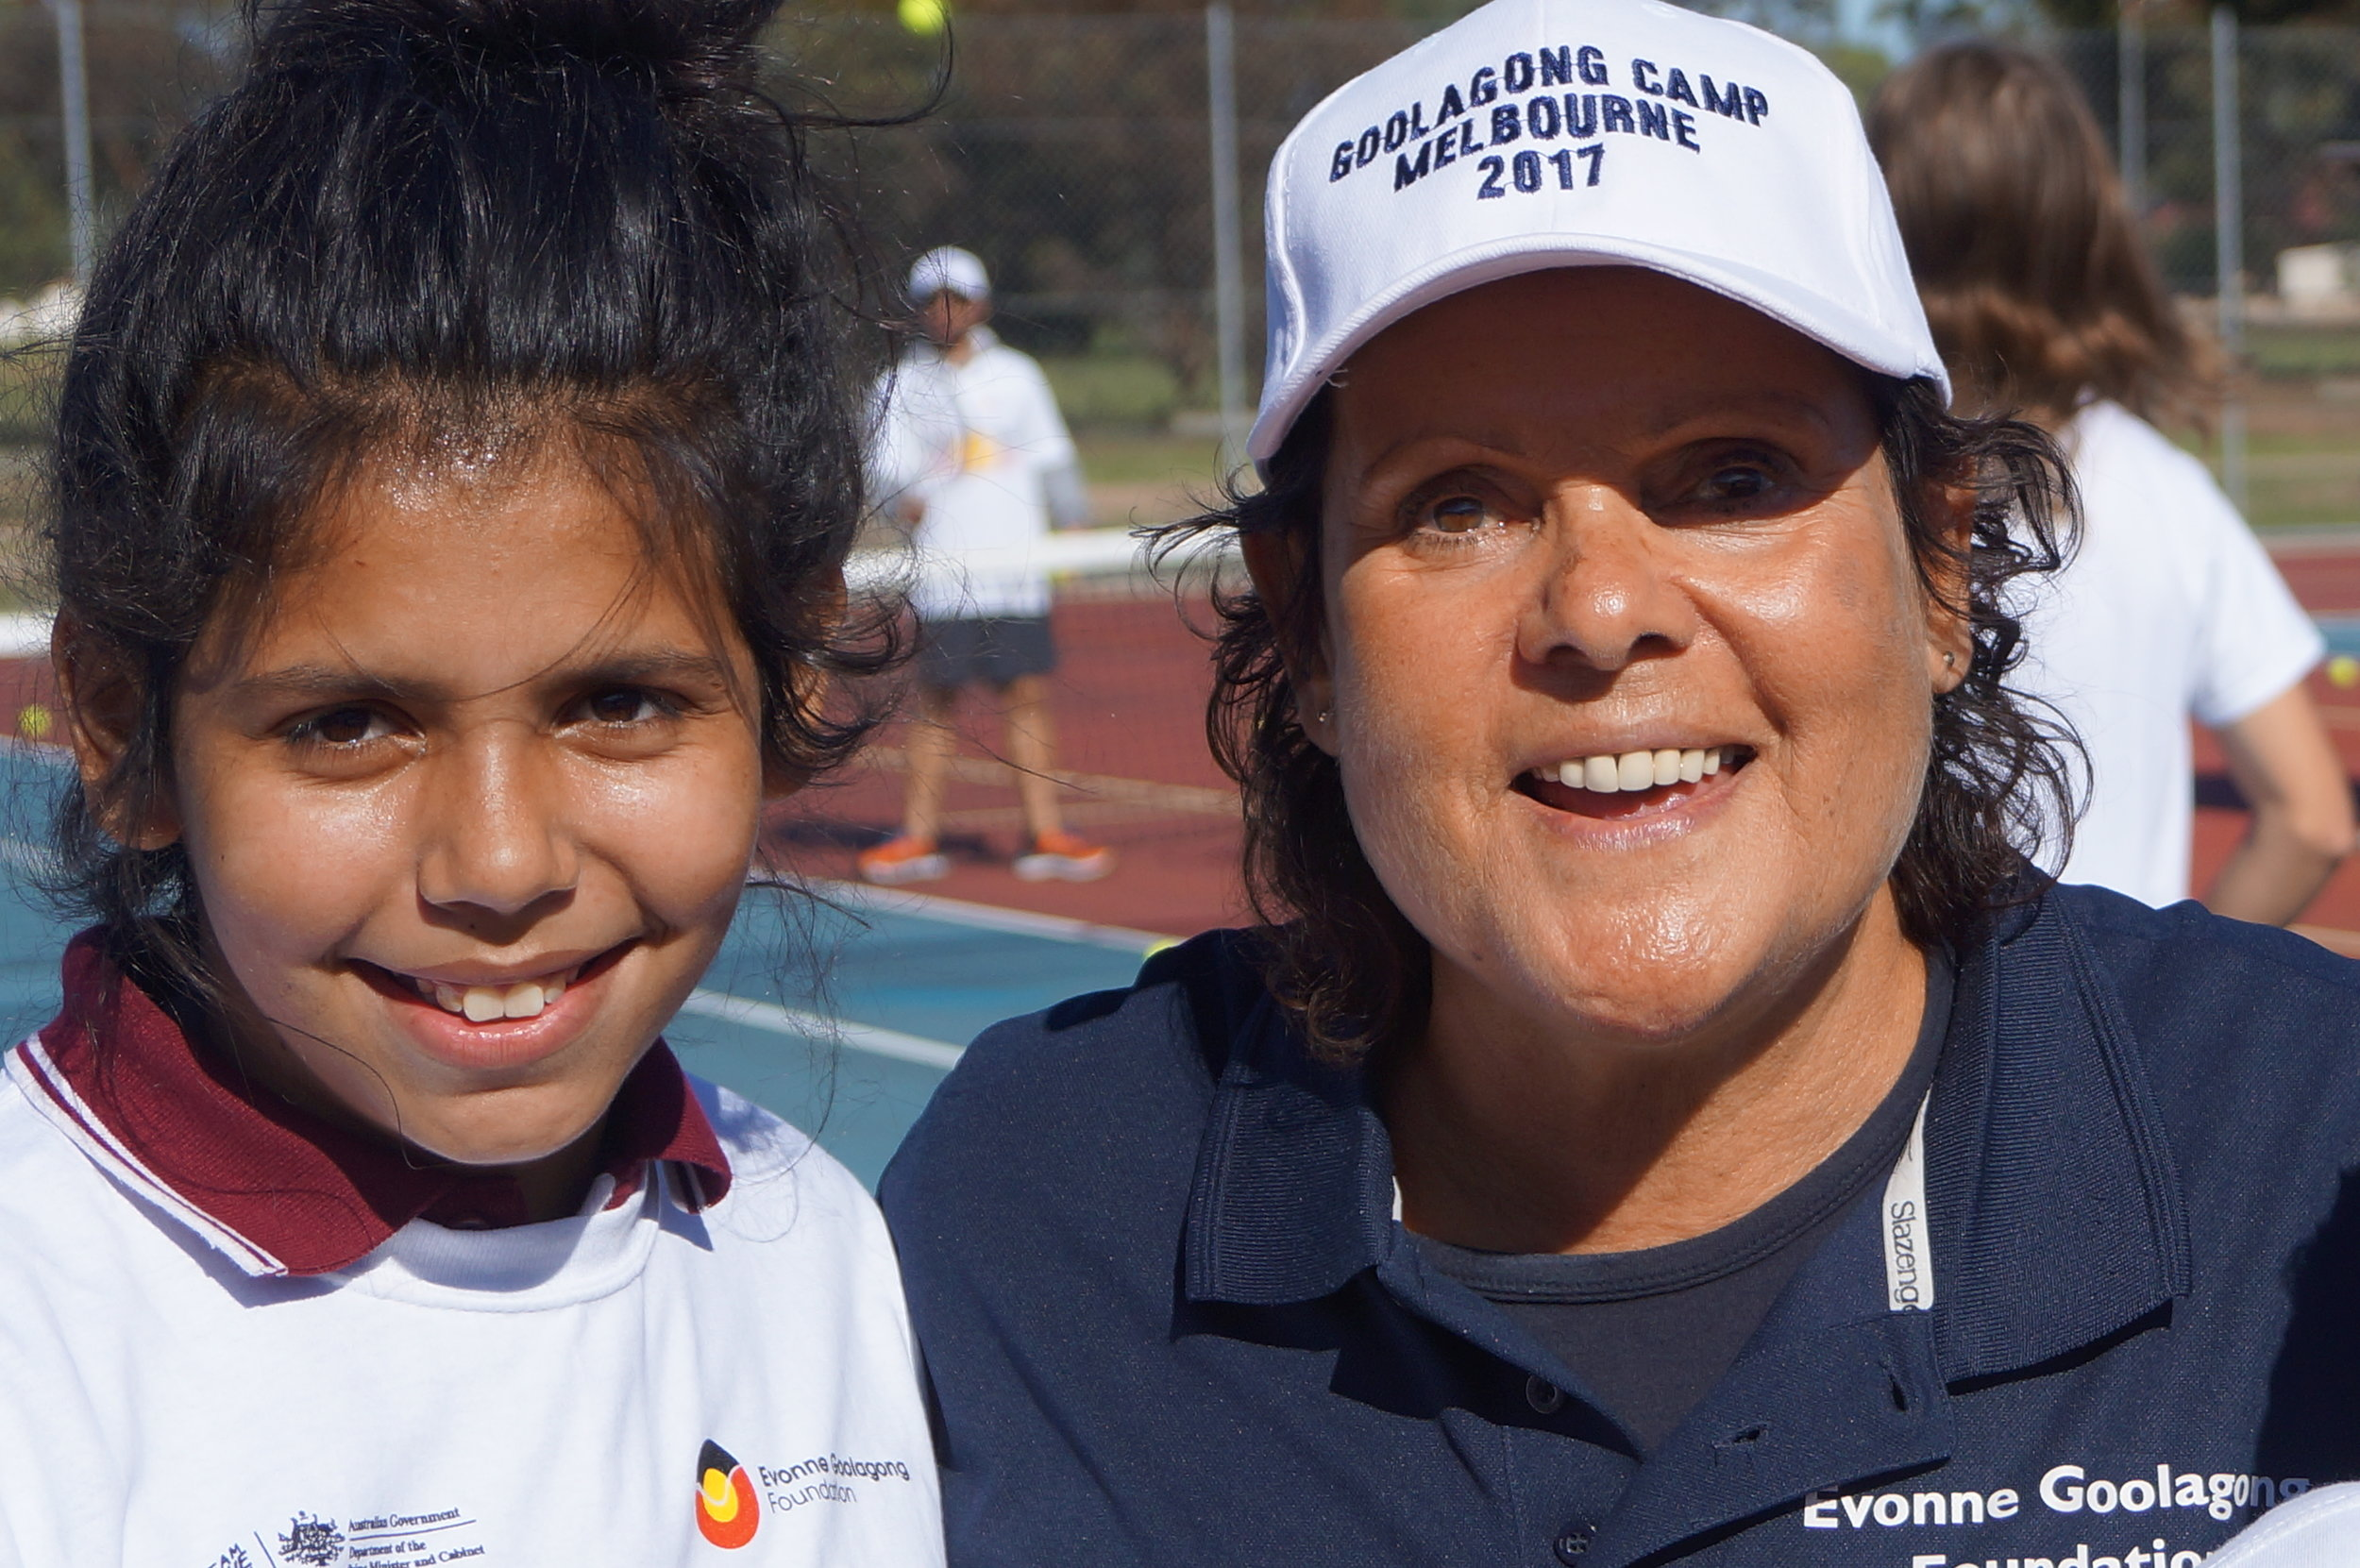 Angel aged 12 from Murray Bridge with the Boss